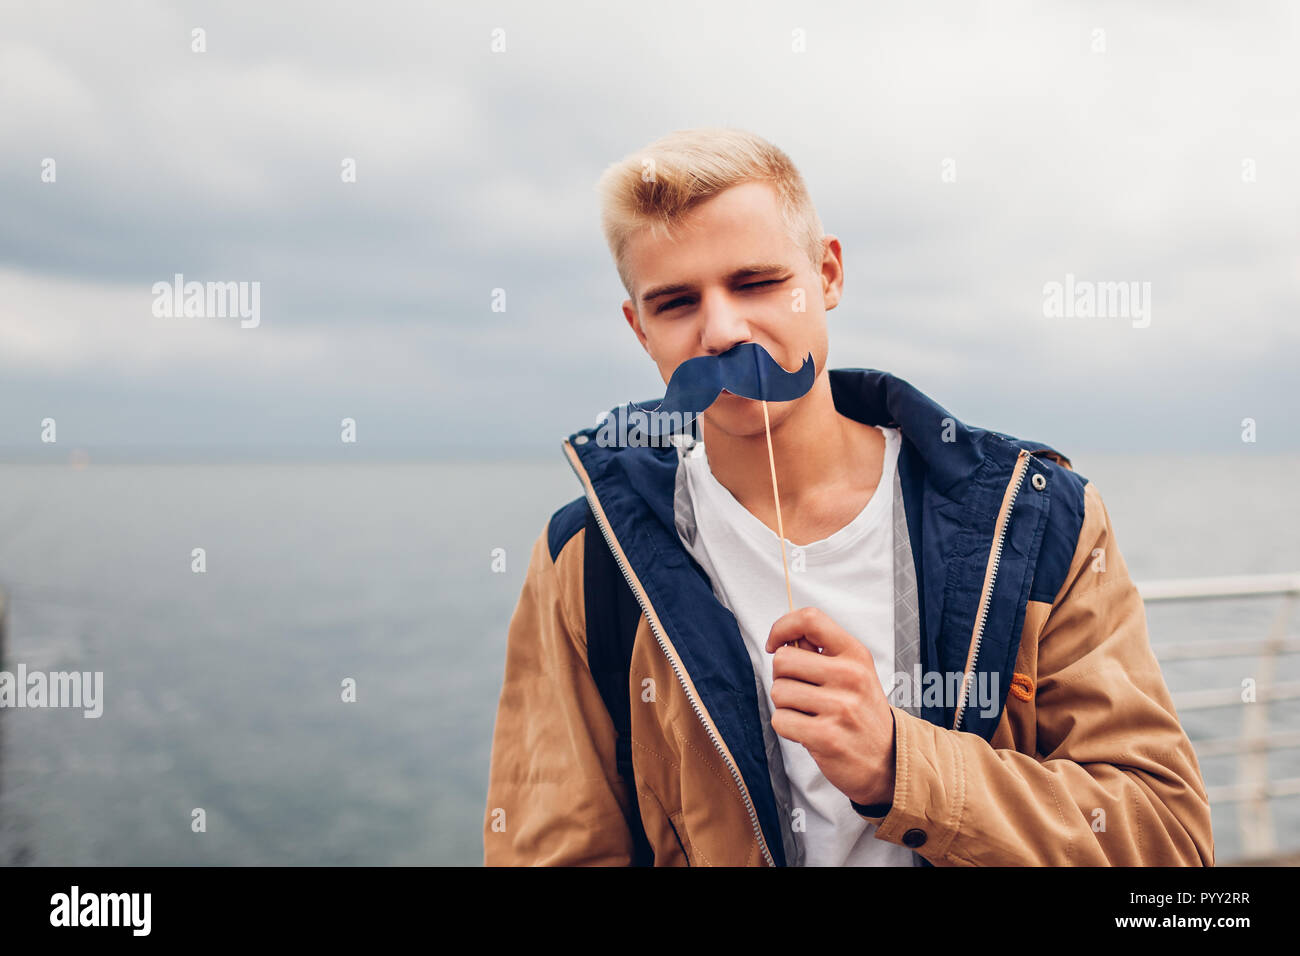 happy college student with backpack holding photo booth props moustache by sea. Guy having fun outdoors. Man winking - Stock Image